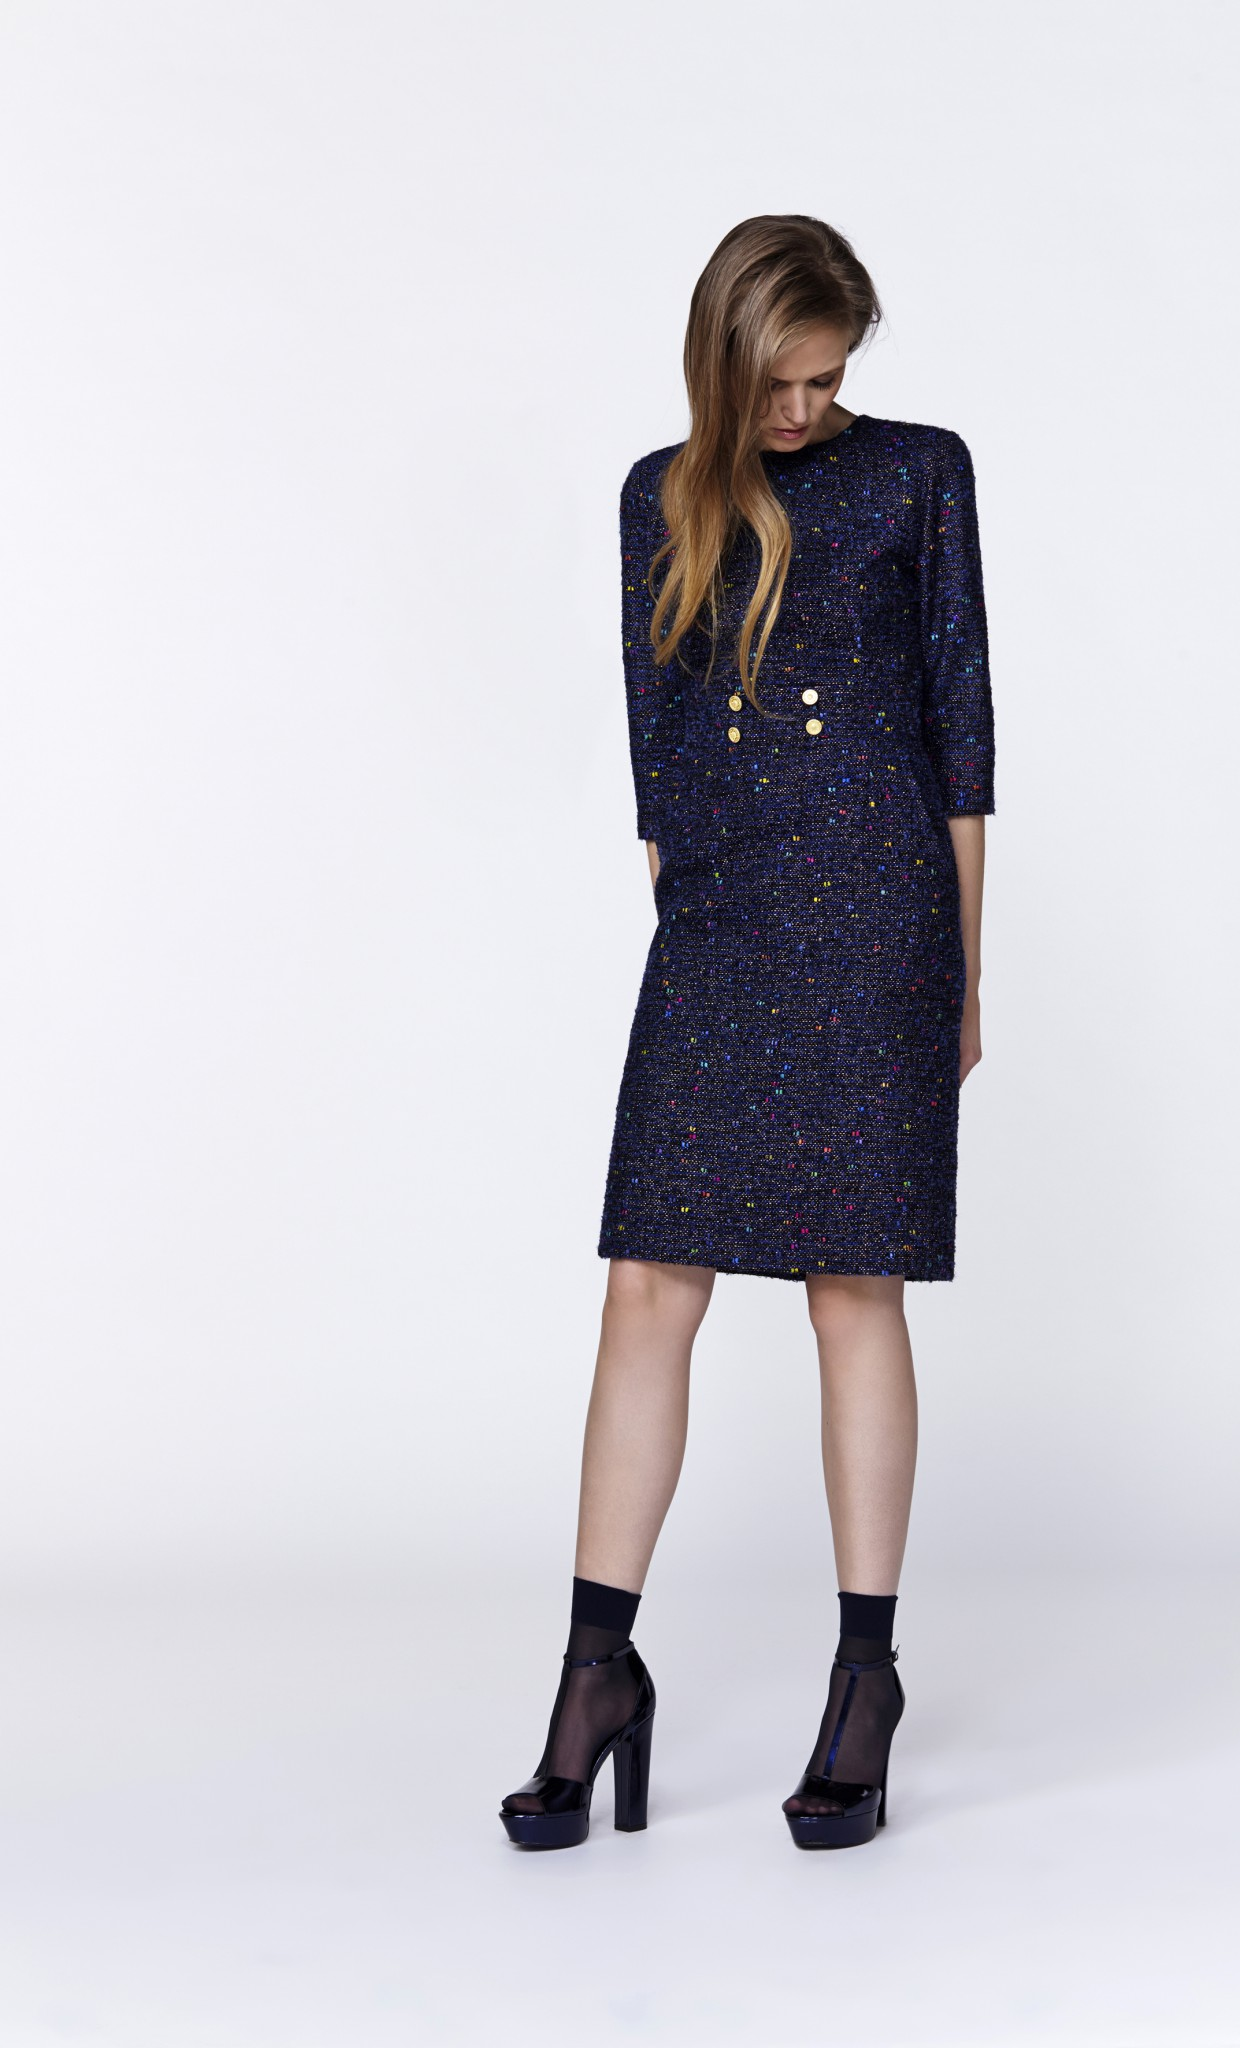 Plakinger: MUTLICOLORED DOTS TWEED DRESS FINISHED WITH GOLDEN BUTTONS - Hiphunters Shop